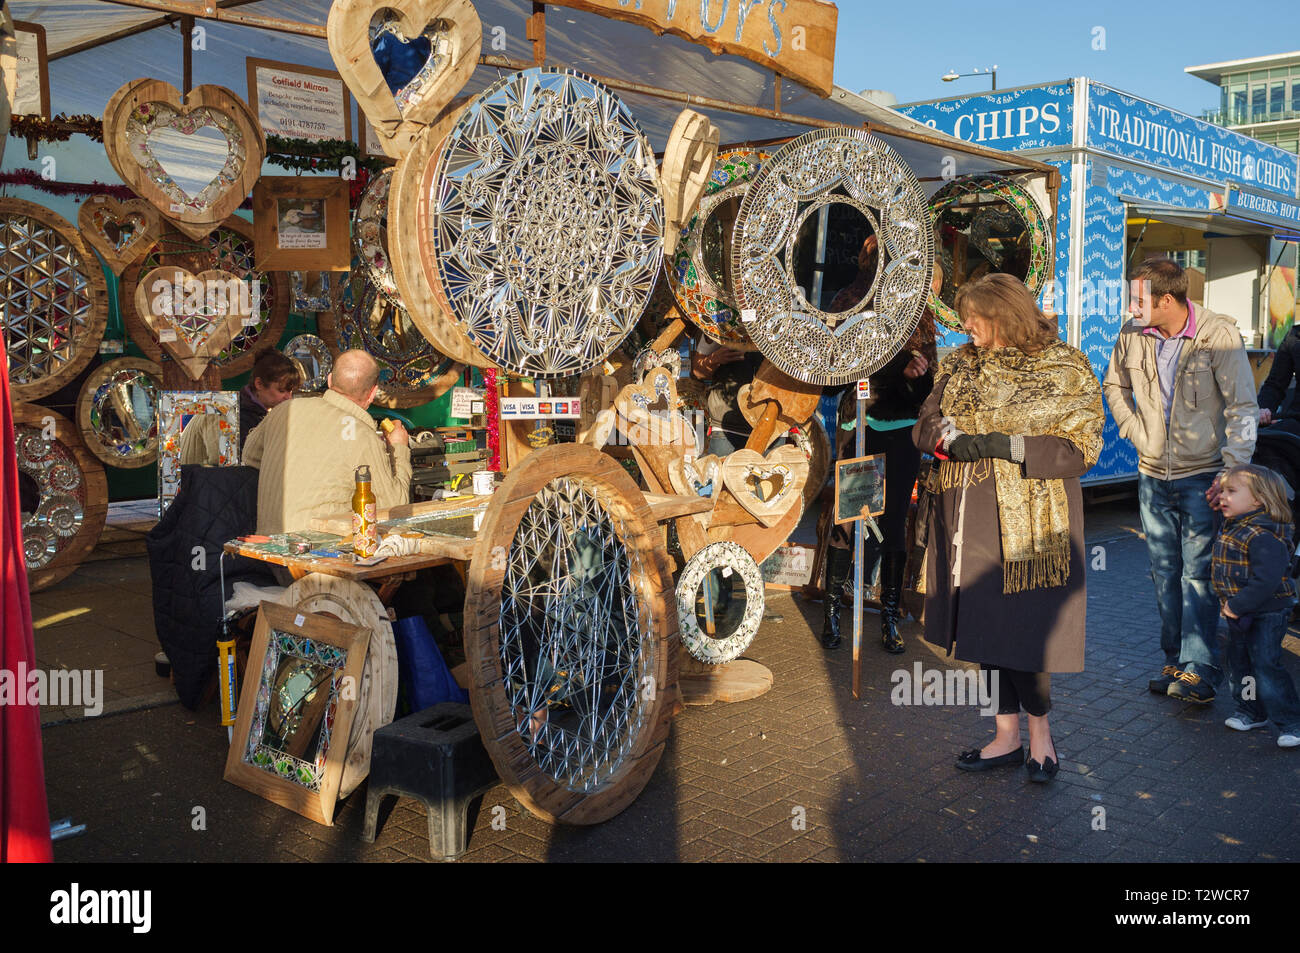 Shoppers Viewing Decorative Mirrors and Glassware on Sale at a Market Stall on the Quayside Sunday Market in Newcastle upon Tyne - Stock Image